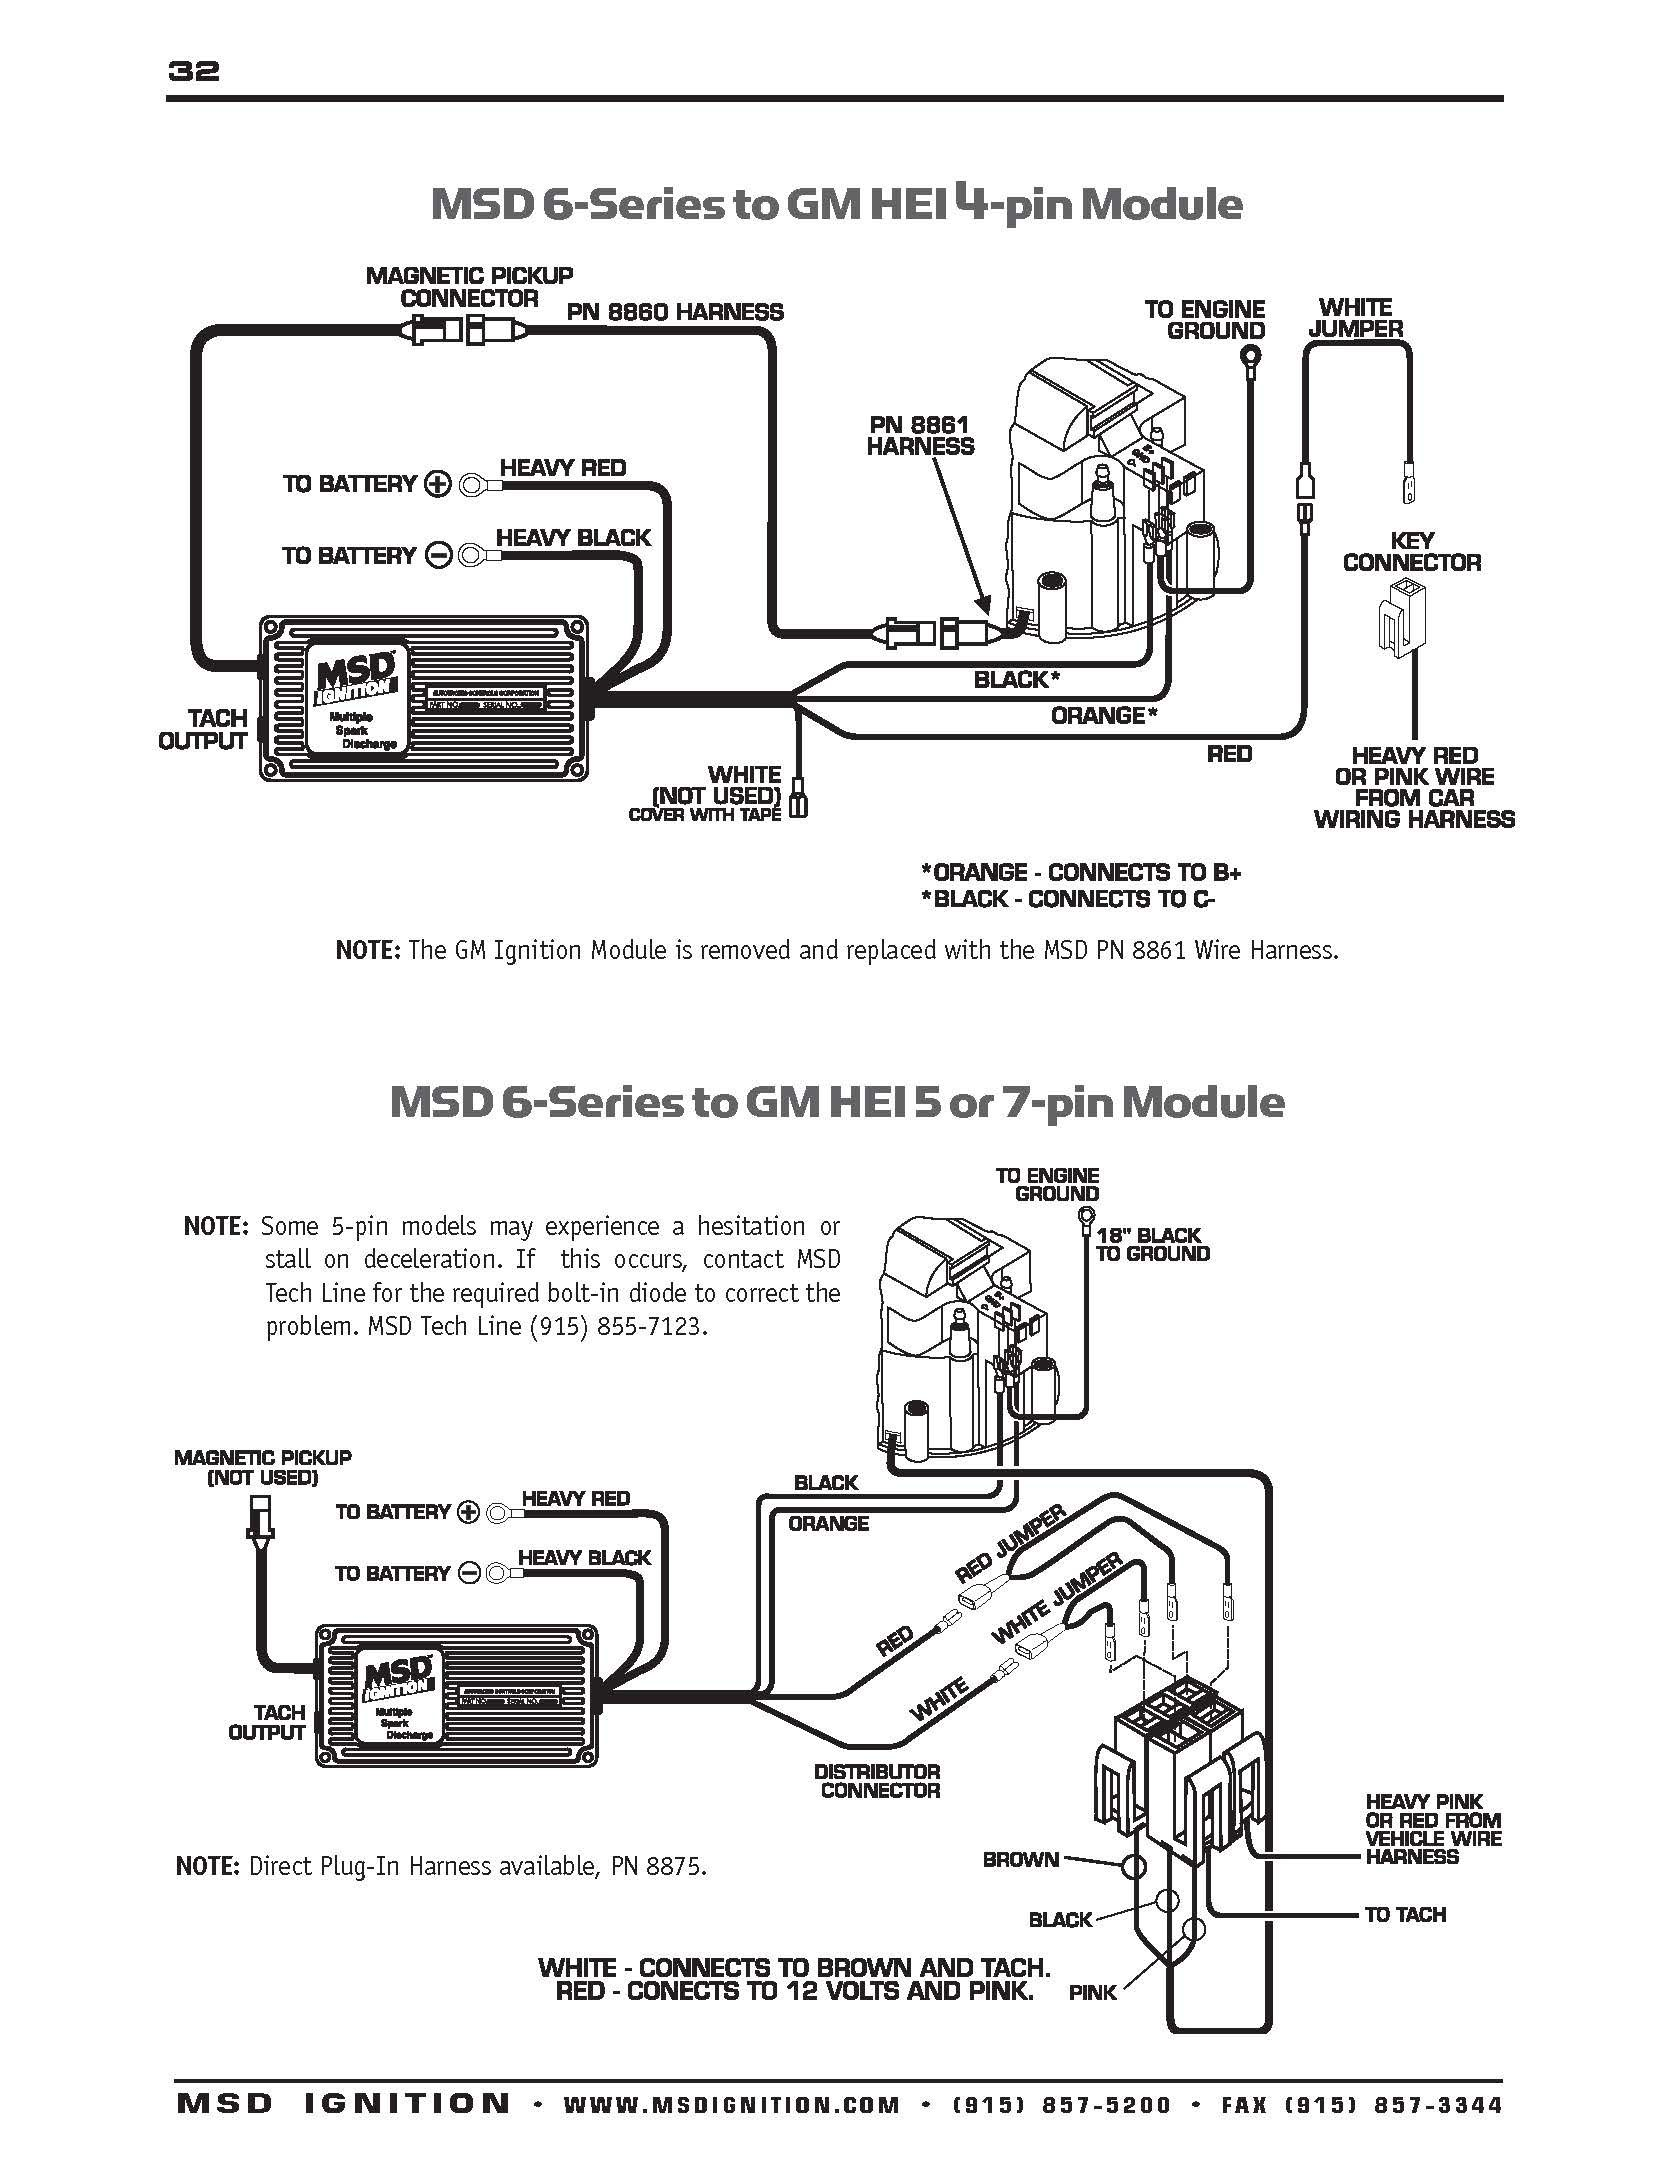 msd ignition wiring diagrams | 1966 chevelle | pinterest ... msd 6al wiring diagram for mopar